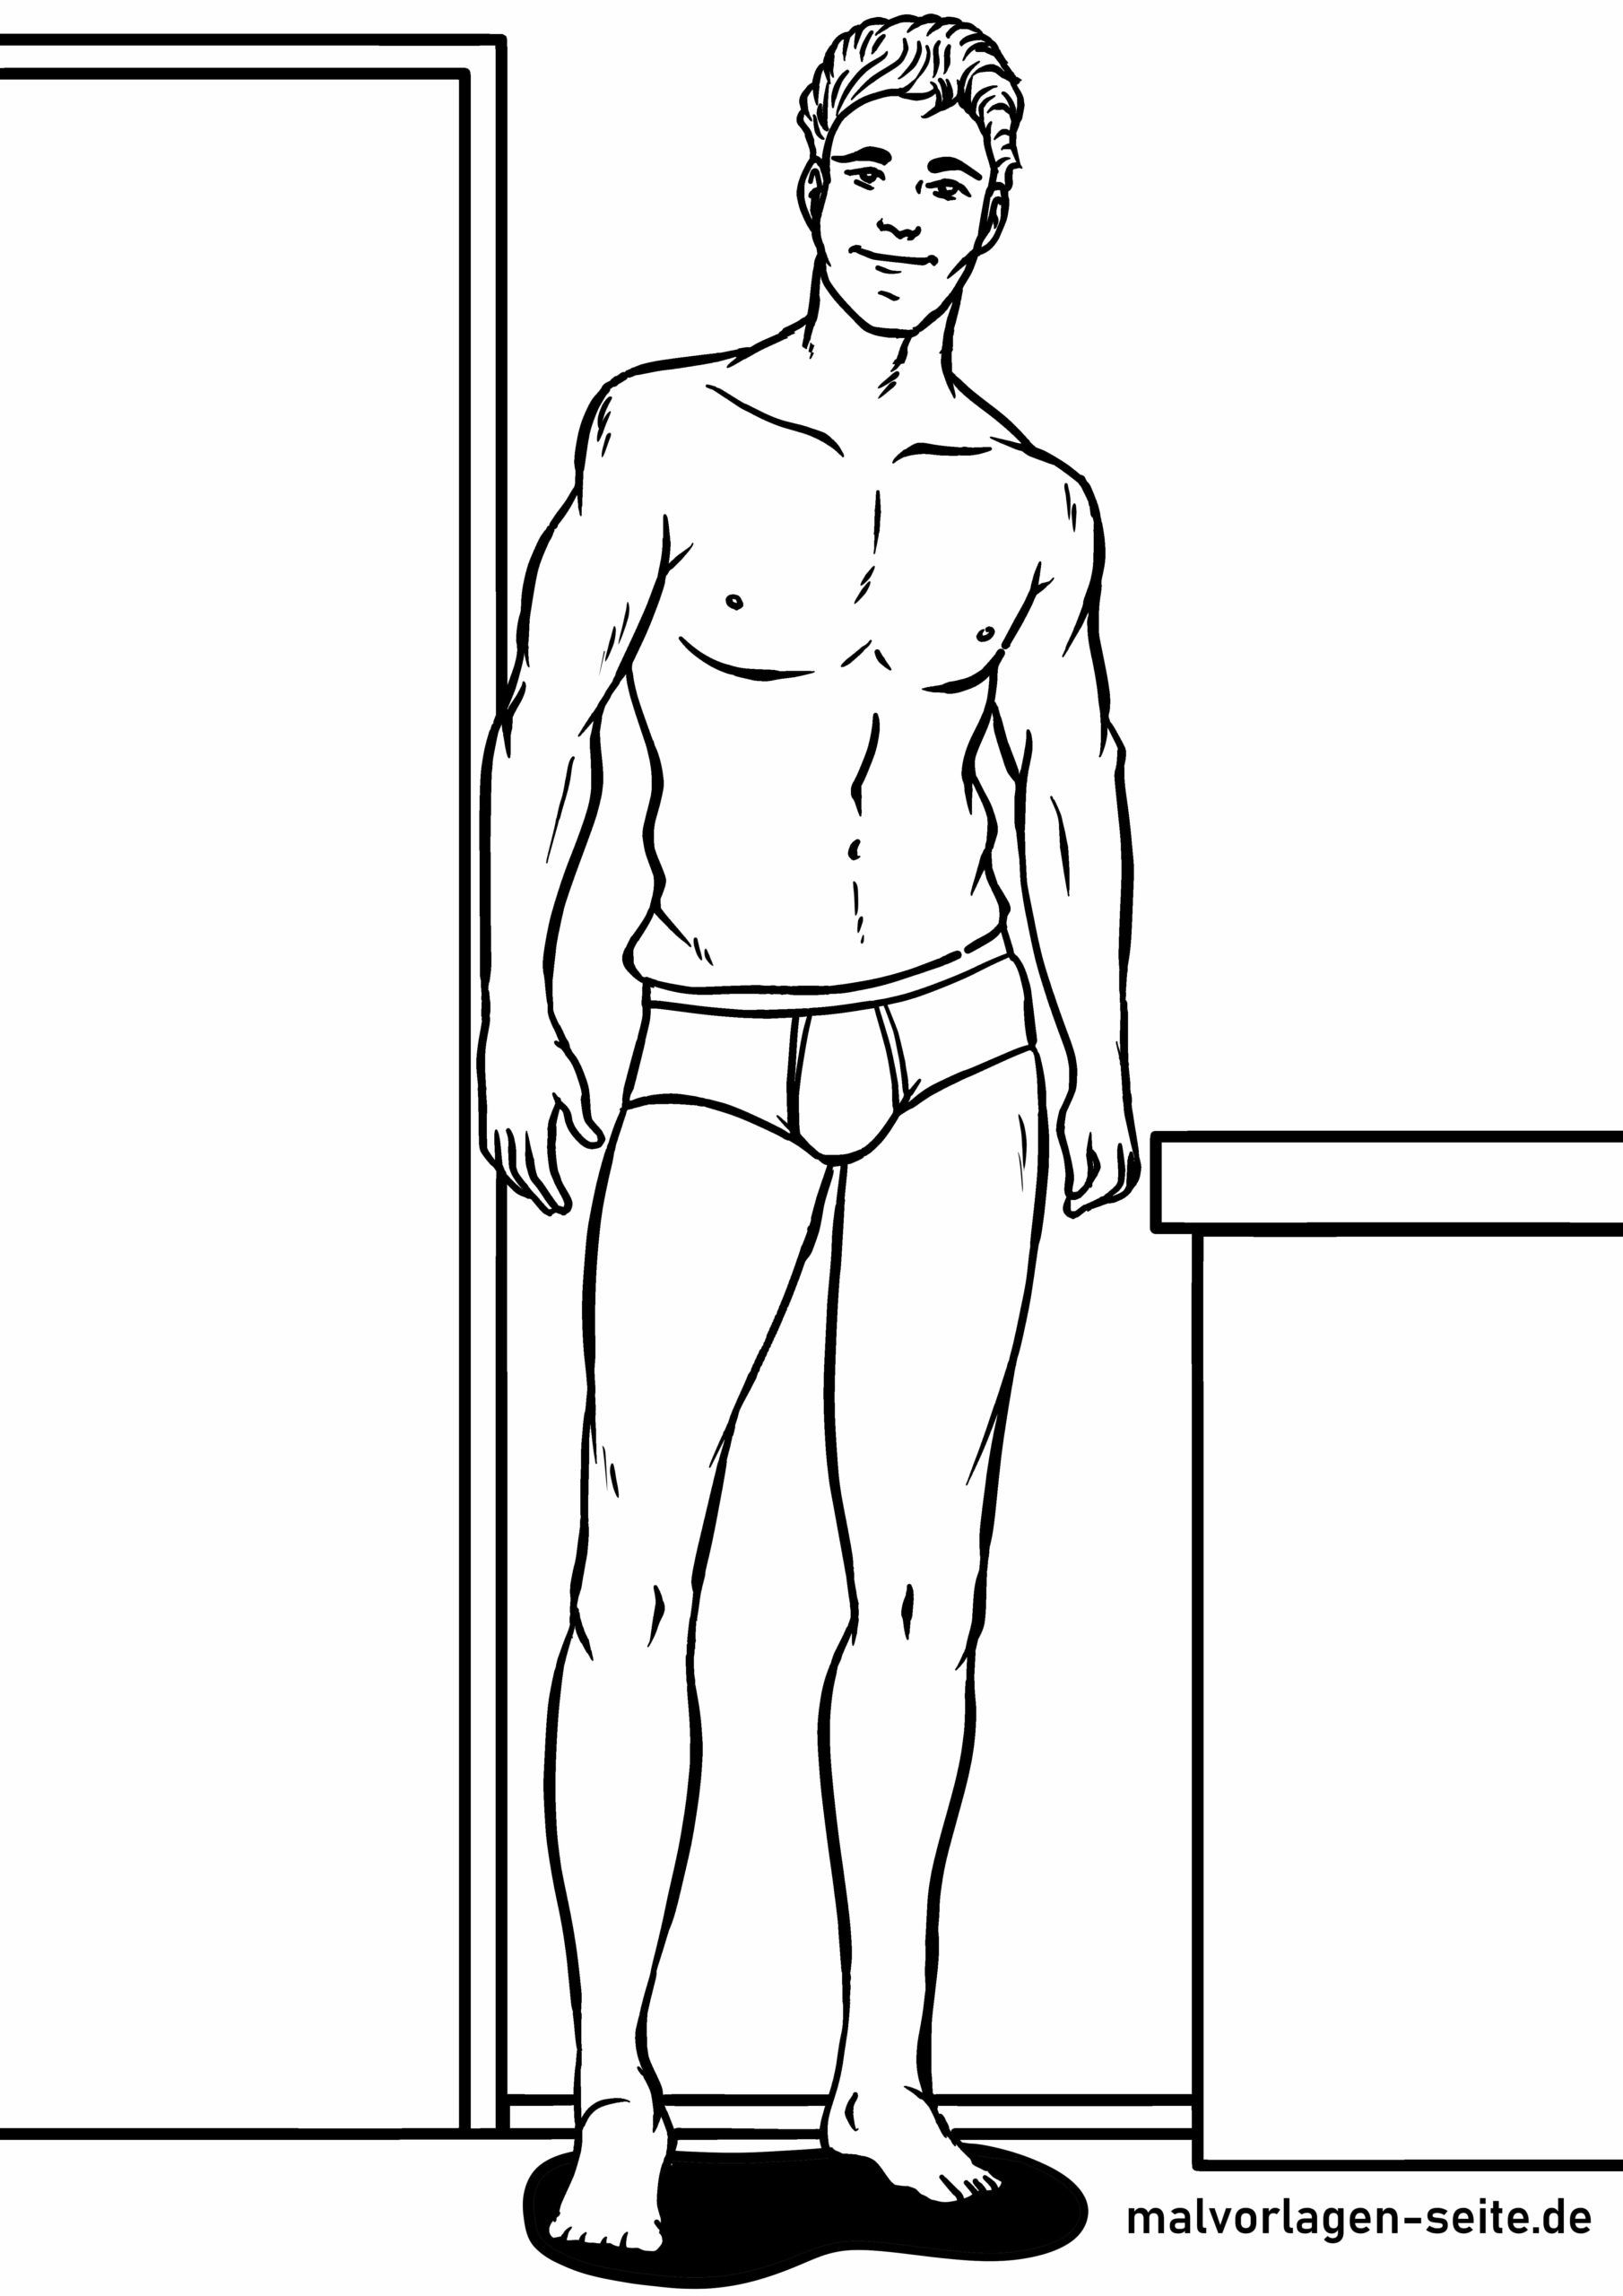 Coloring page male model